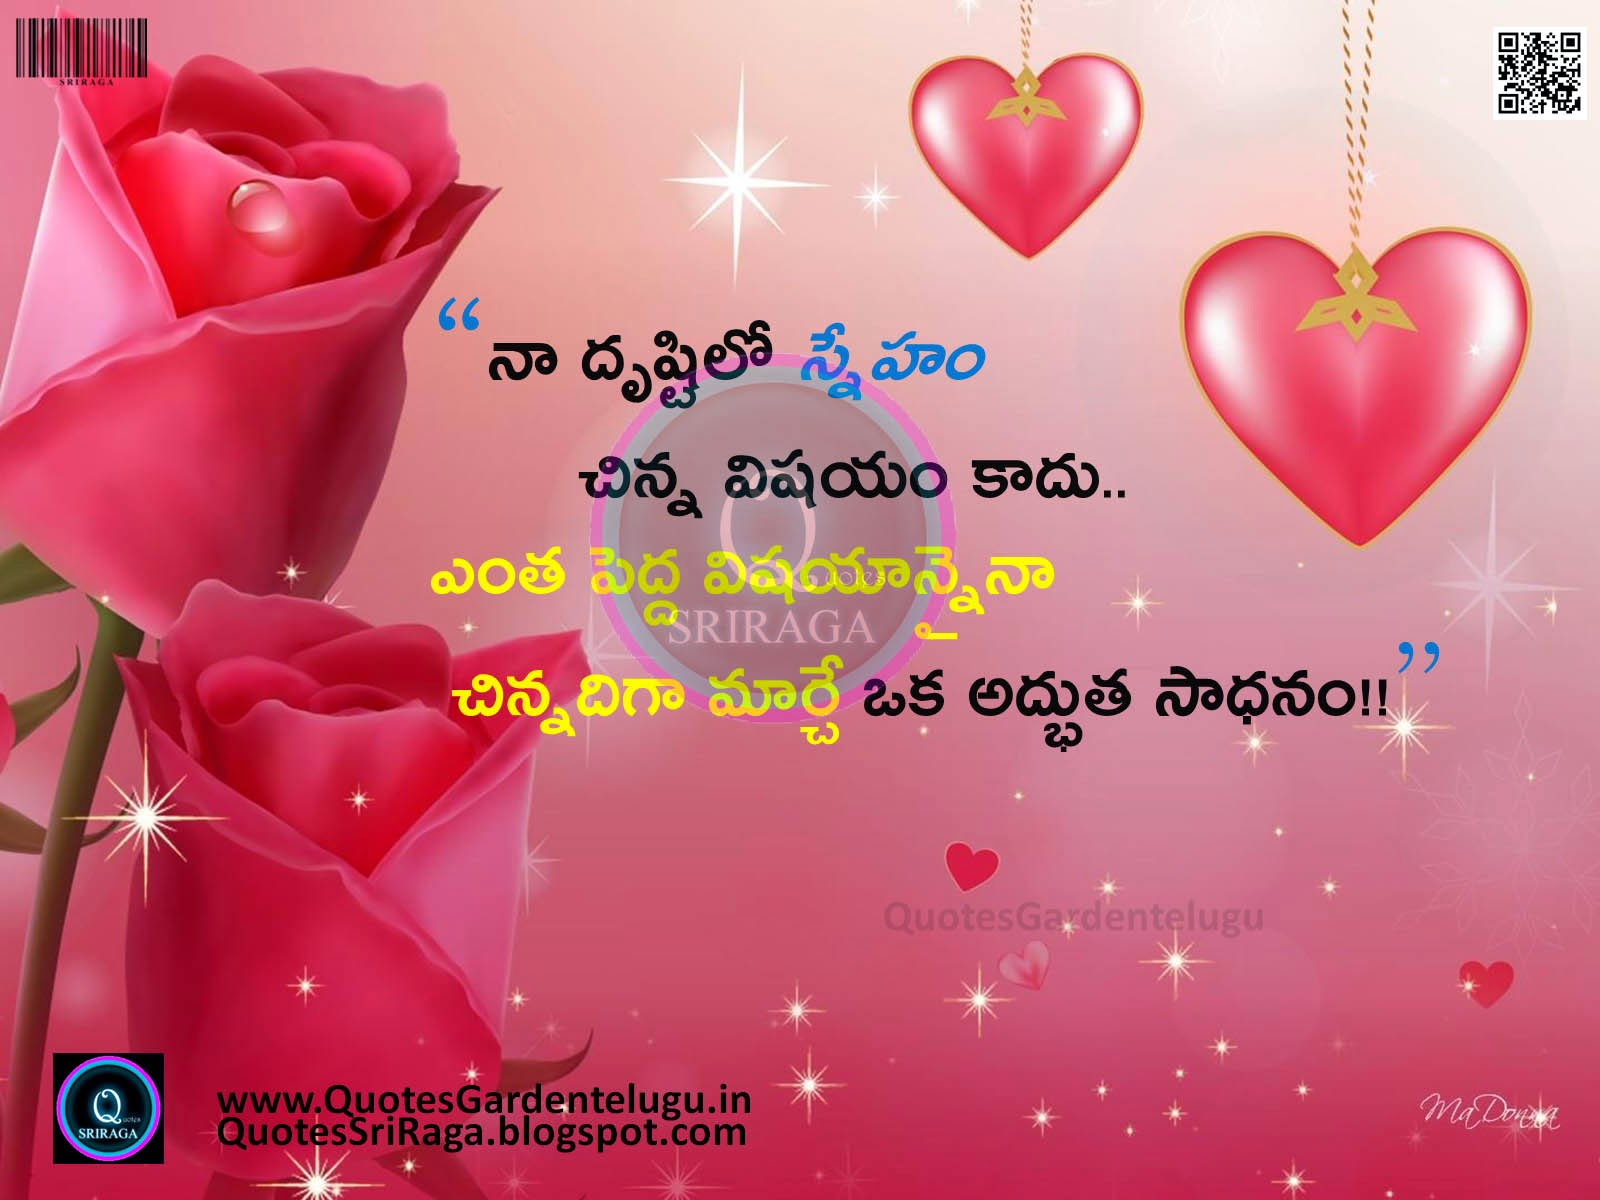 Quotes About Friendship With Images Best Telugu Friendship Quotes With Images  Quotes Garden Telugu